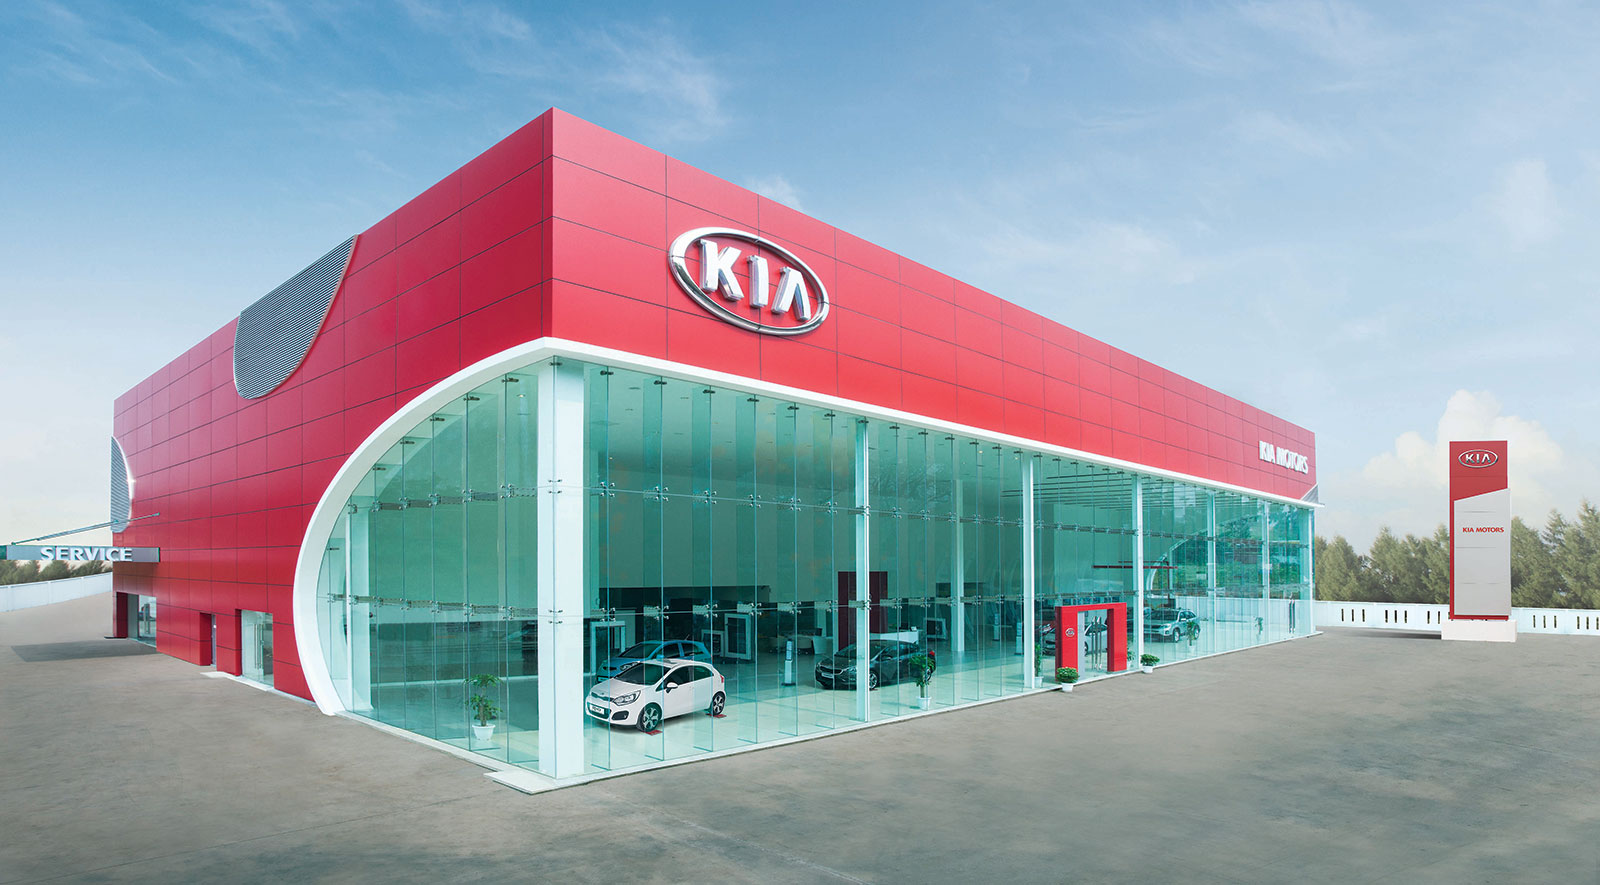 Kia Red Cube Rawang 4s Centre Officially Opens Doors Image